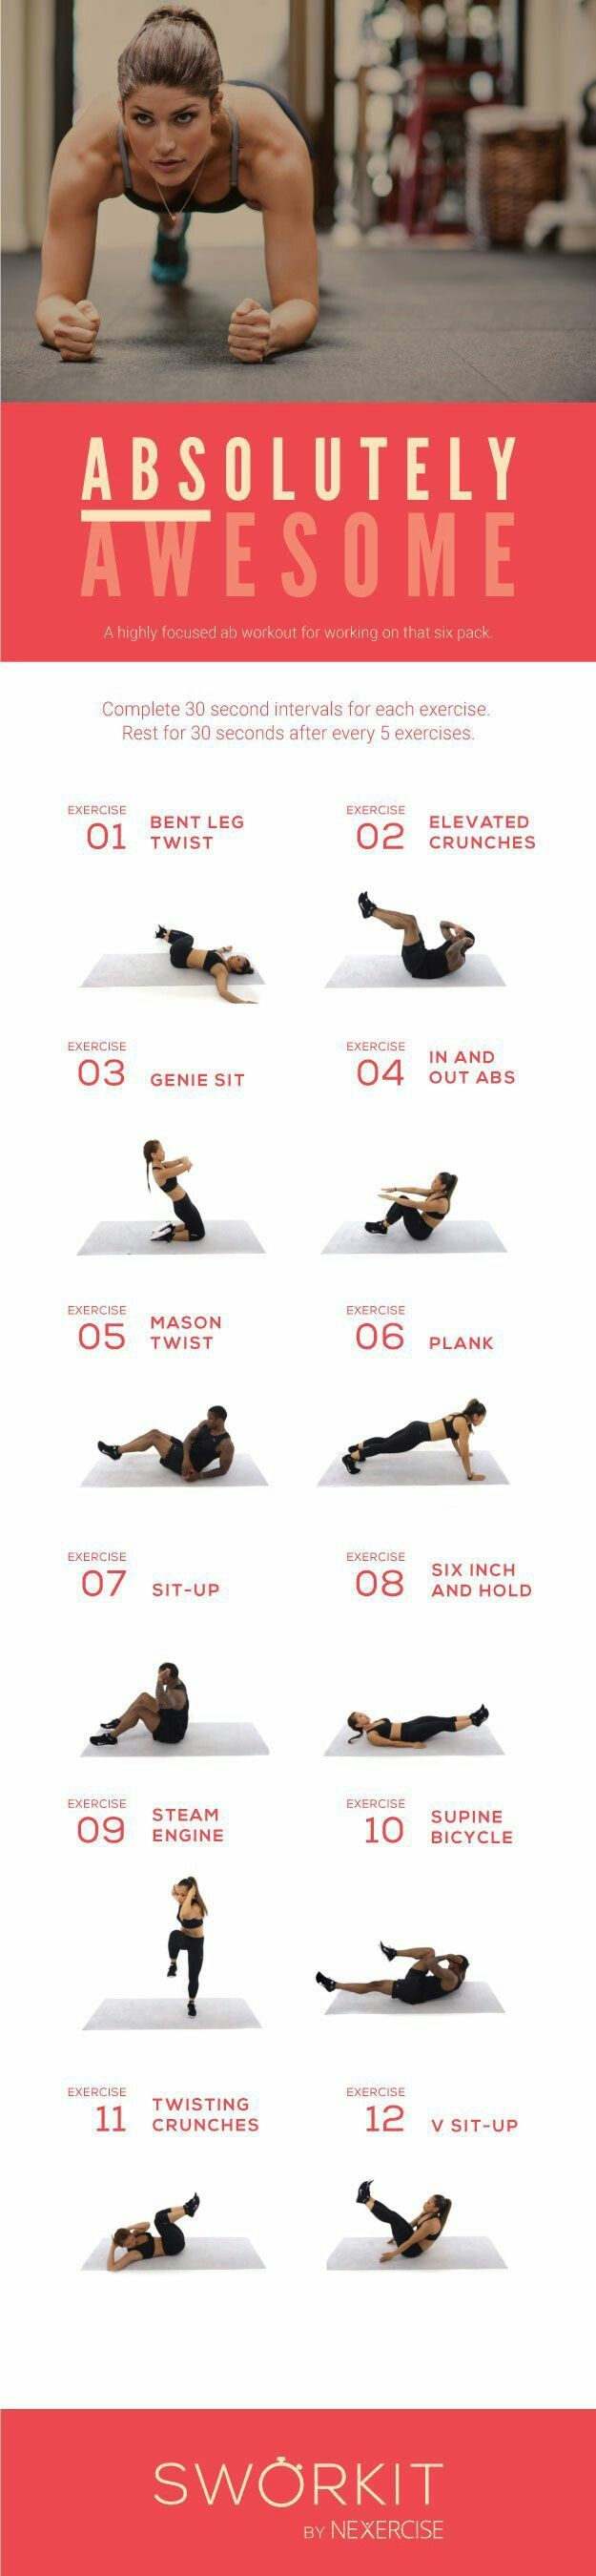 Absolutely awesome abs and strenght workout routine